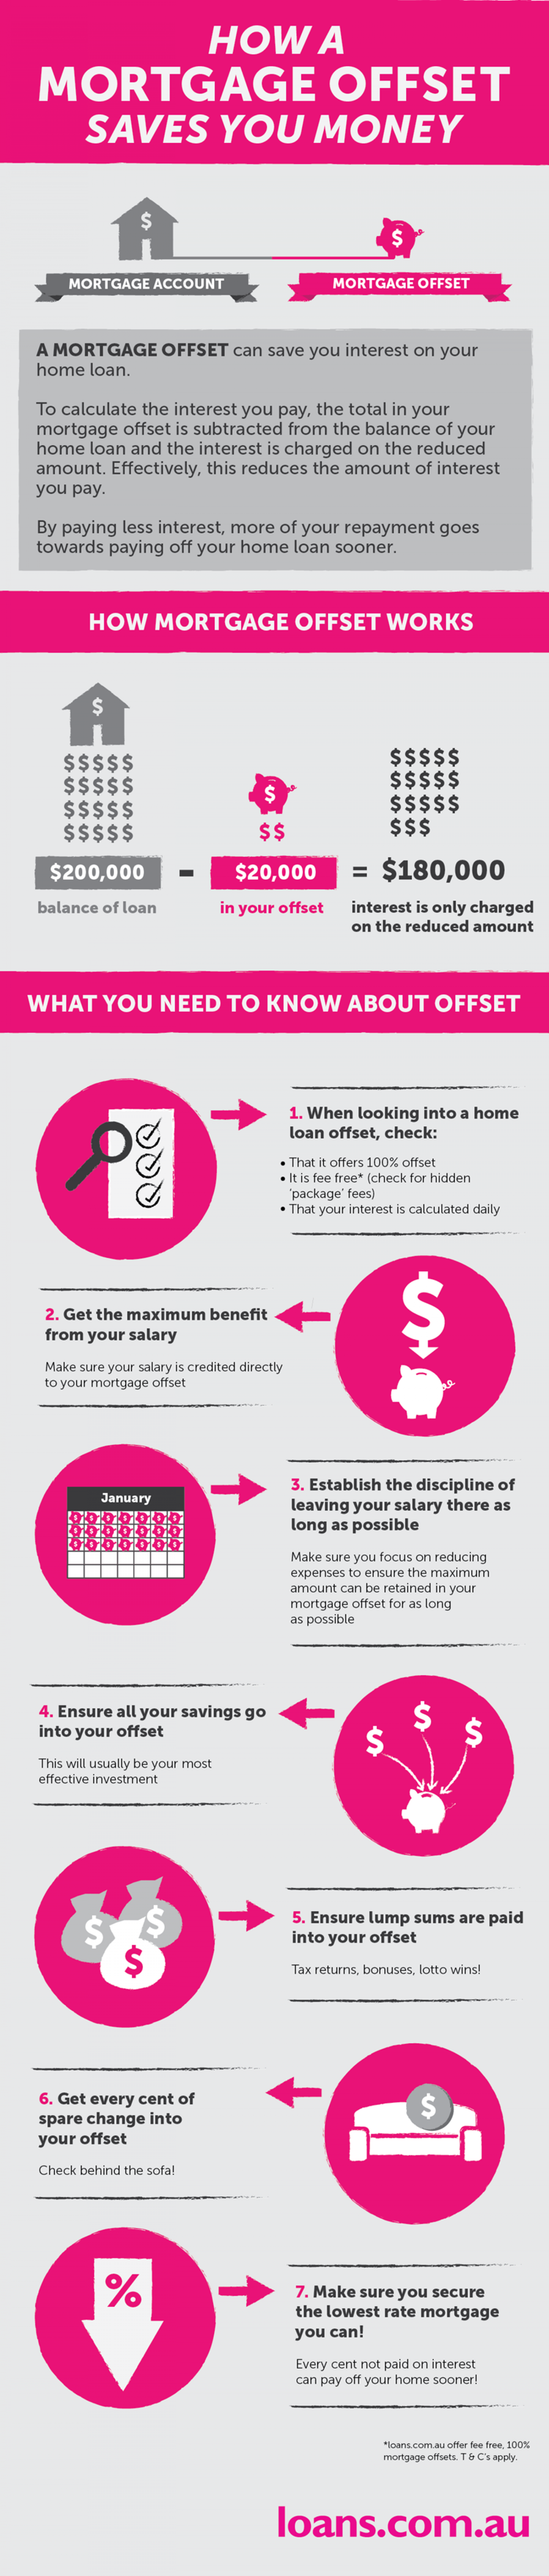 How a Mortgage Offset Saves You Money Infographic